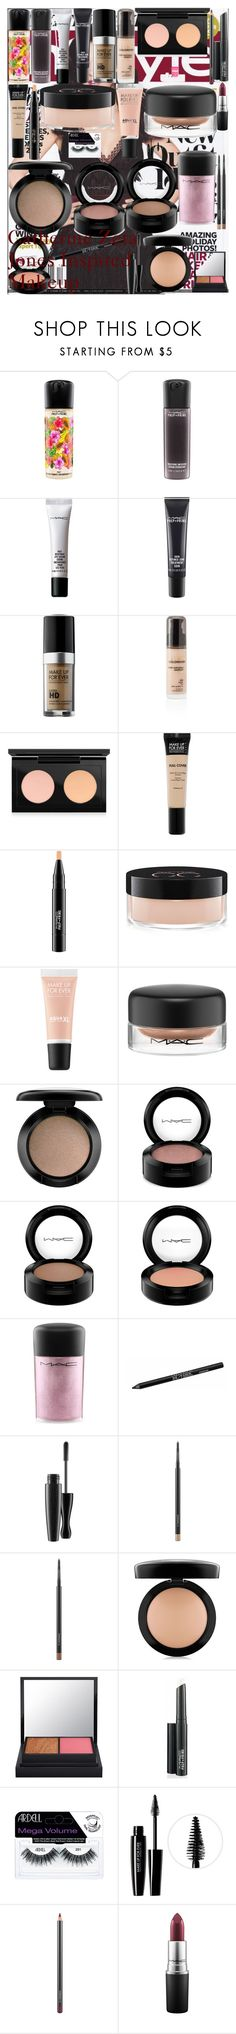 """Catherine Zeta Jones Inspired Makeup"" by oroartye-1 on Polyvore featuring beauty, MAC Cosmetics, MAKE UP FOR EVER, Revlon, Urban Decay and Barry M"